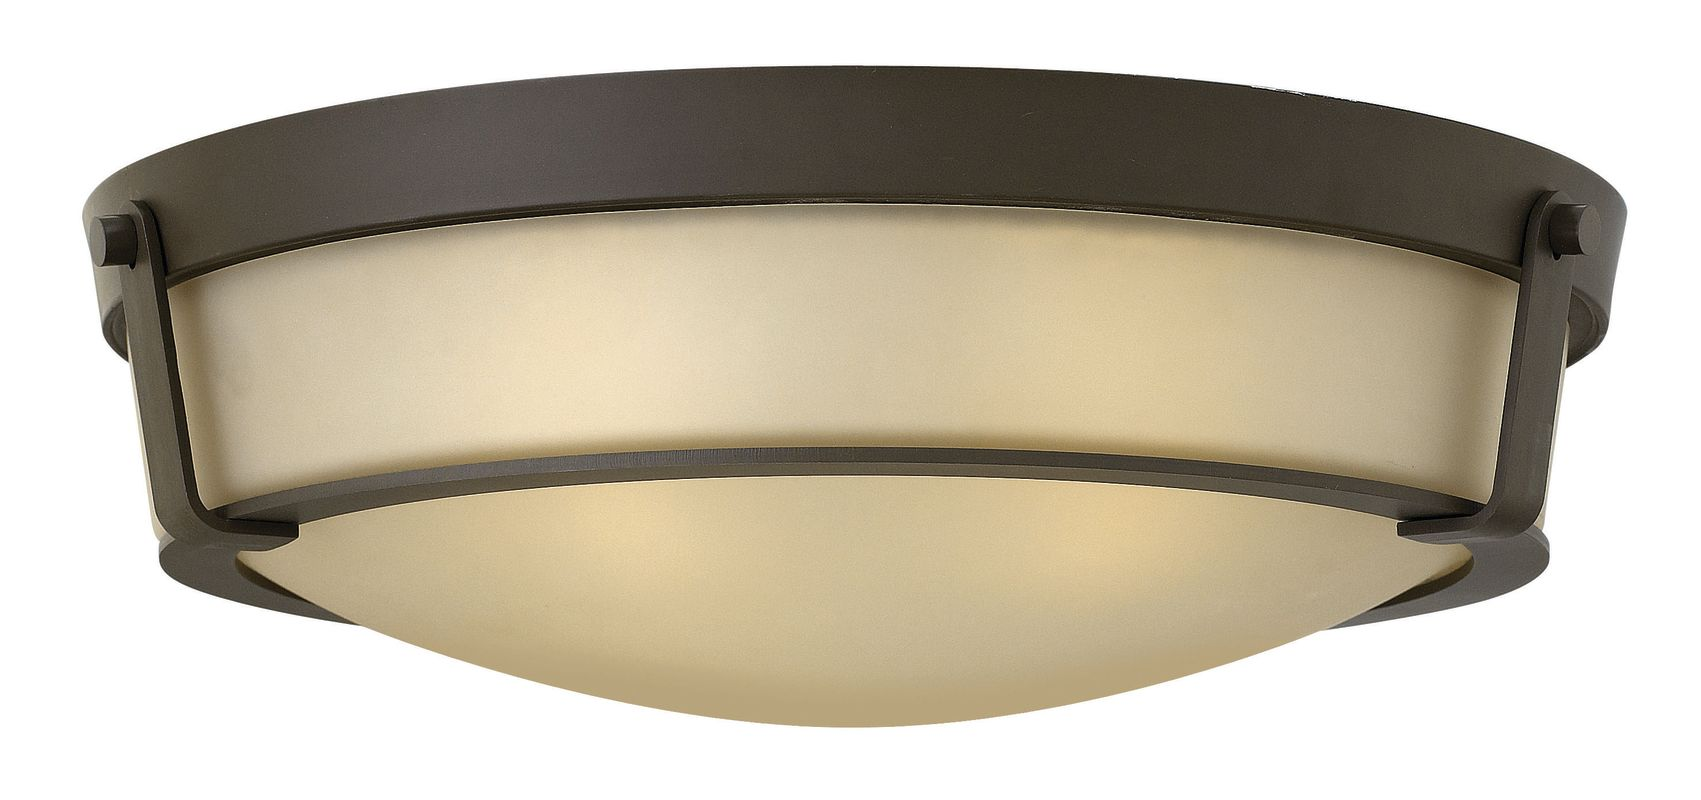 Hinkley Lighting 3226 4 Light Flush Mount Ceiling Fixture from the Sale $449.00 ITEM#: 2493711 MODEL# :3226OB UPC#: 640665322613 :